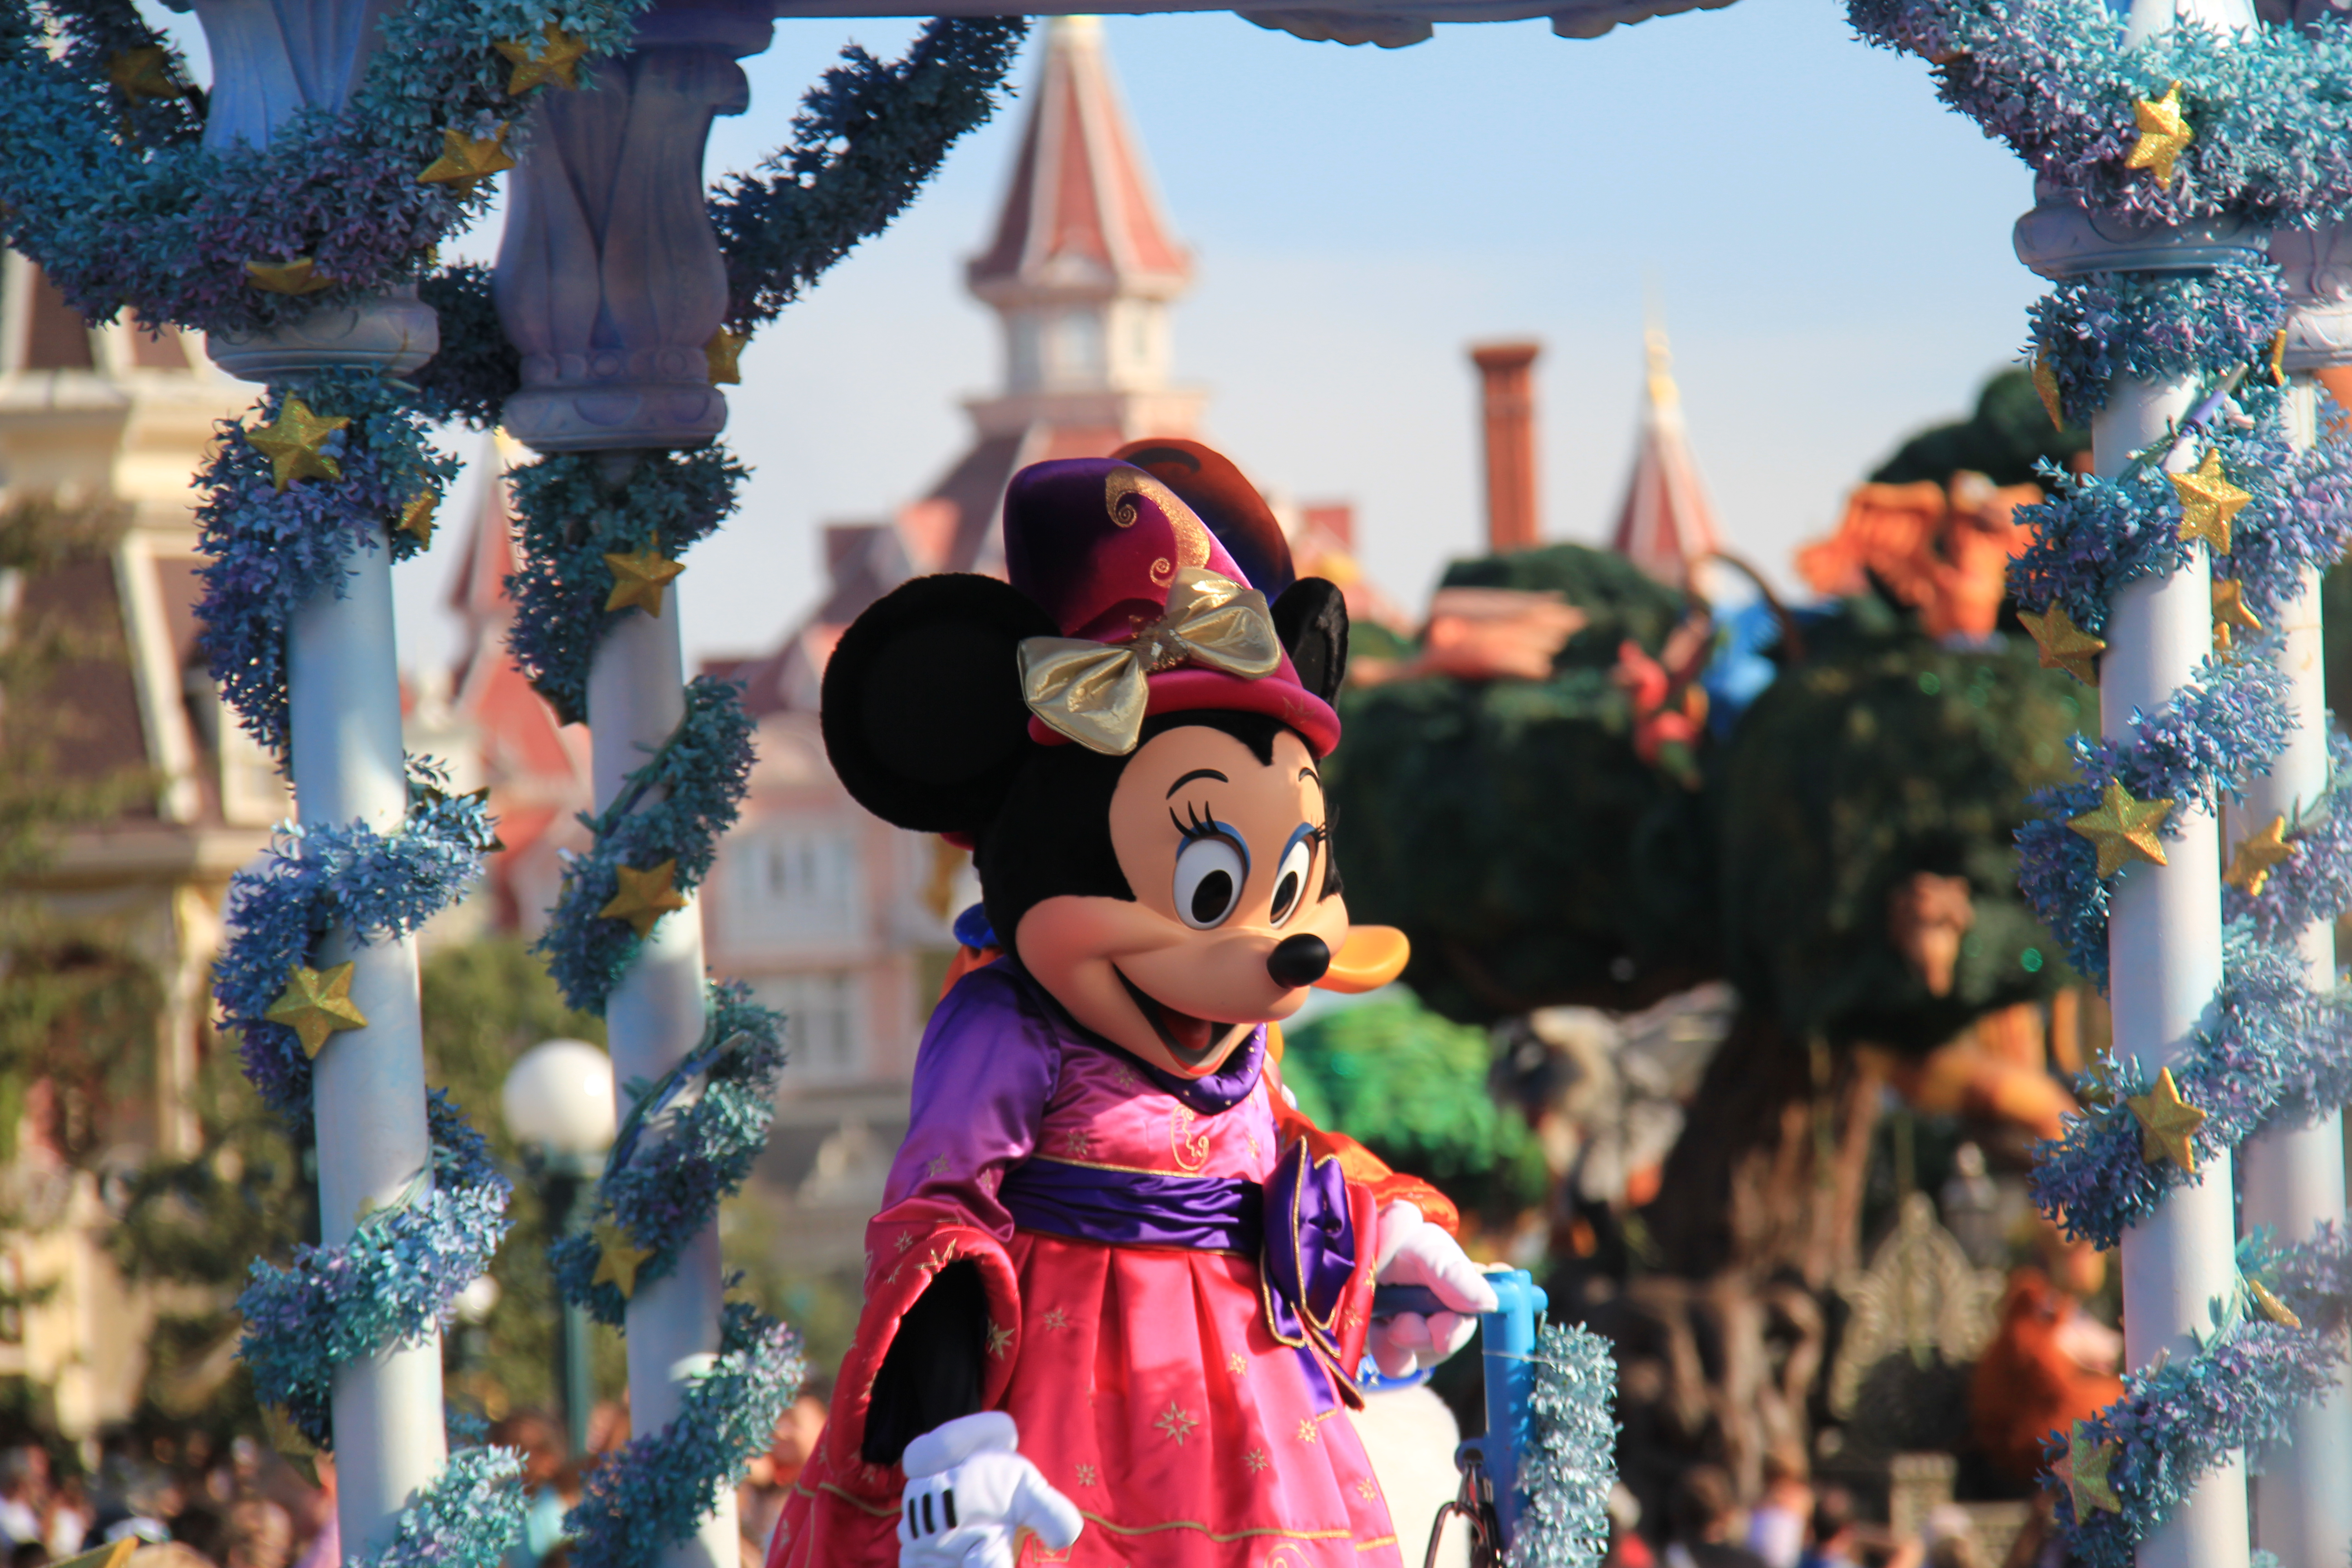 eurodisney essay Essay disneyland the greatest place on the face of the earth is disneyland nowhere else has the magic that a day at disneyland possesses from my childhood to my adulthood, i have never experienced a day at disneyland that didnt put enough joy in my heart to far exceed the admission price.